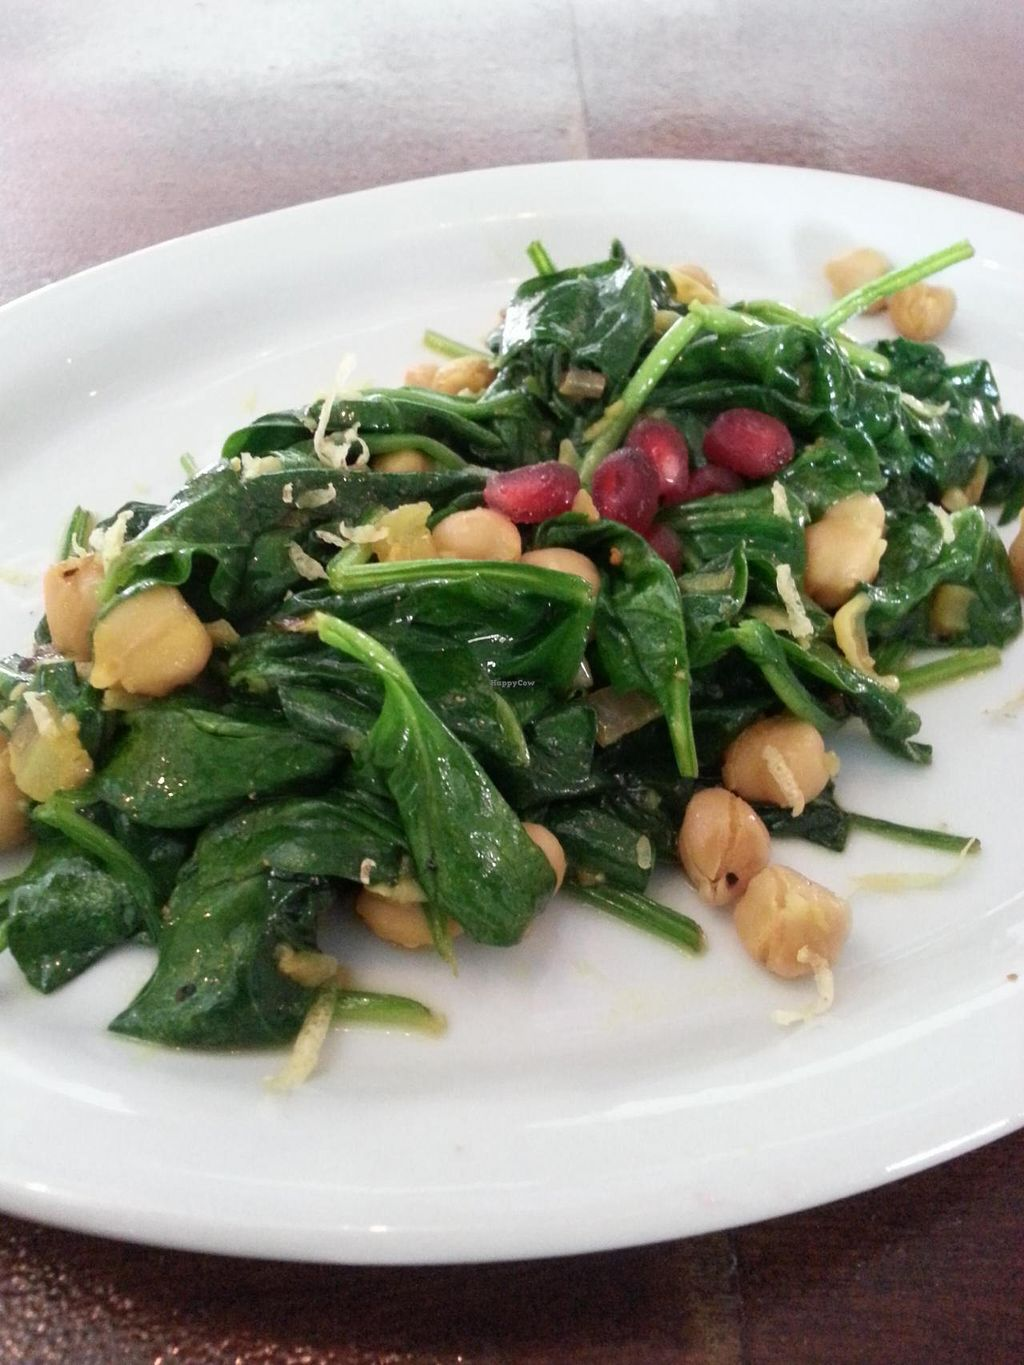 """Photo of CLOSED: Nush  by <a href=""""/members/profile/ErickCedeno"""">ErickCedeno</a> <br/>Sauteed Spinach with Chickpeas <br/> April 14, 2015  - <a href='/contact/abuse/image/57462/99102'>Report</a>"""